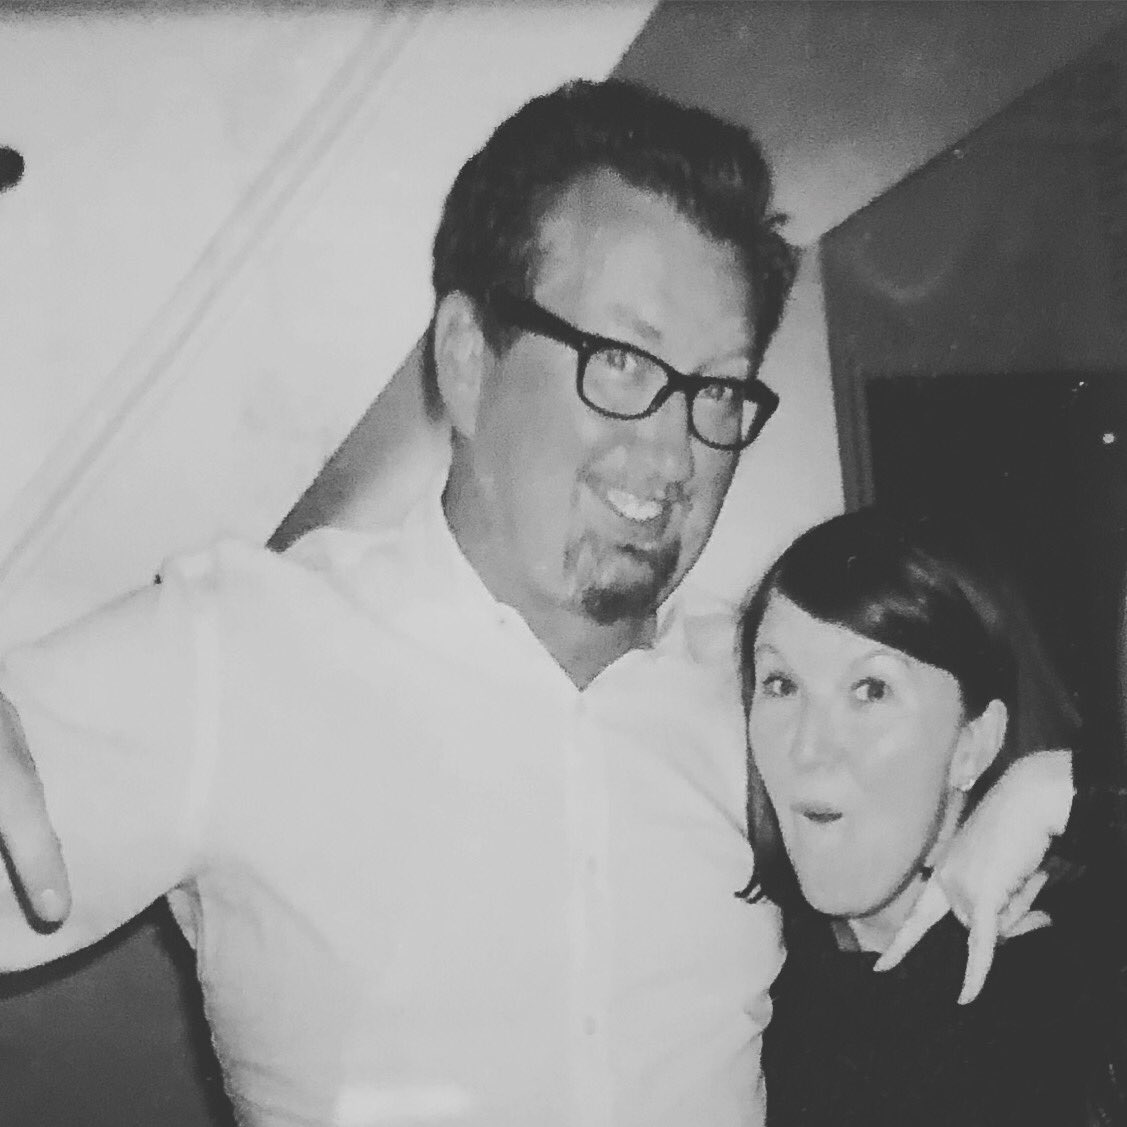 Happy anniversary my sweet fellow @ChrisHaston1  13 years of true love and more laughs than I could ever count.  hashtag blessed hashtag lucky (we met working on #theOffice ) <br>http://pic.twitter.com/UYovkAtoTf